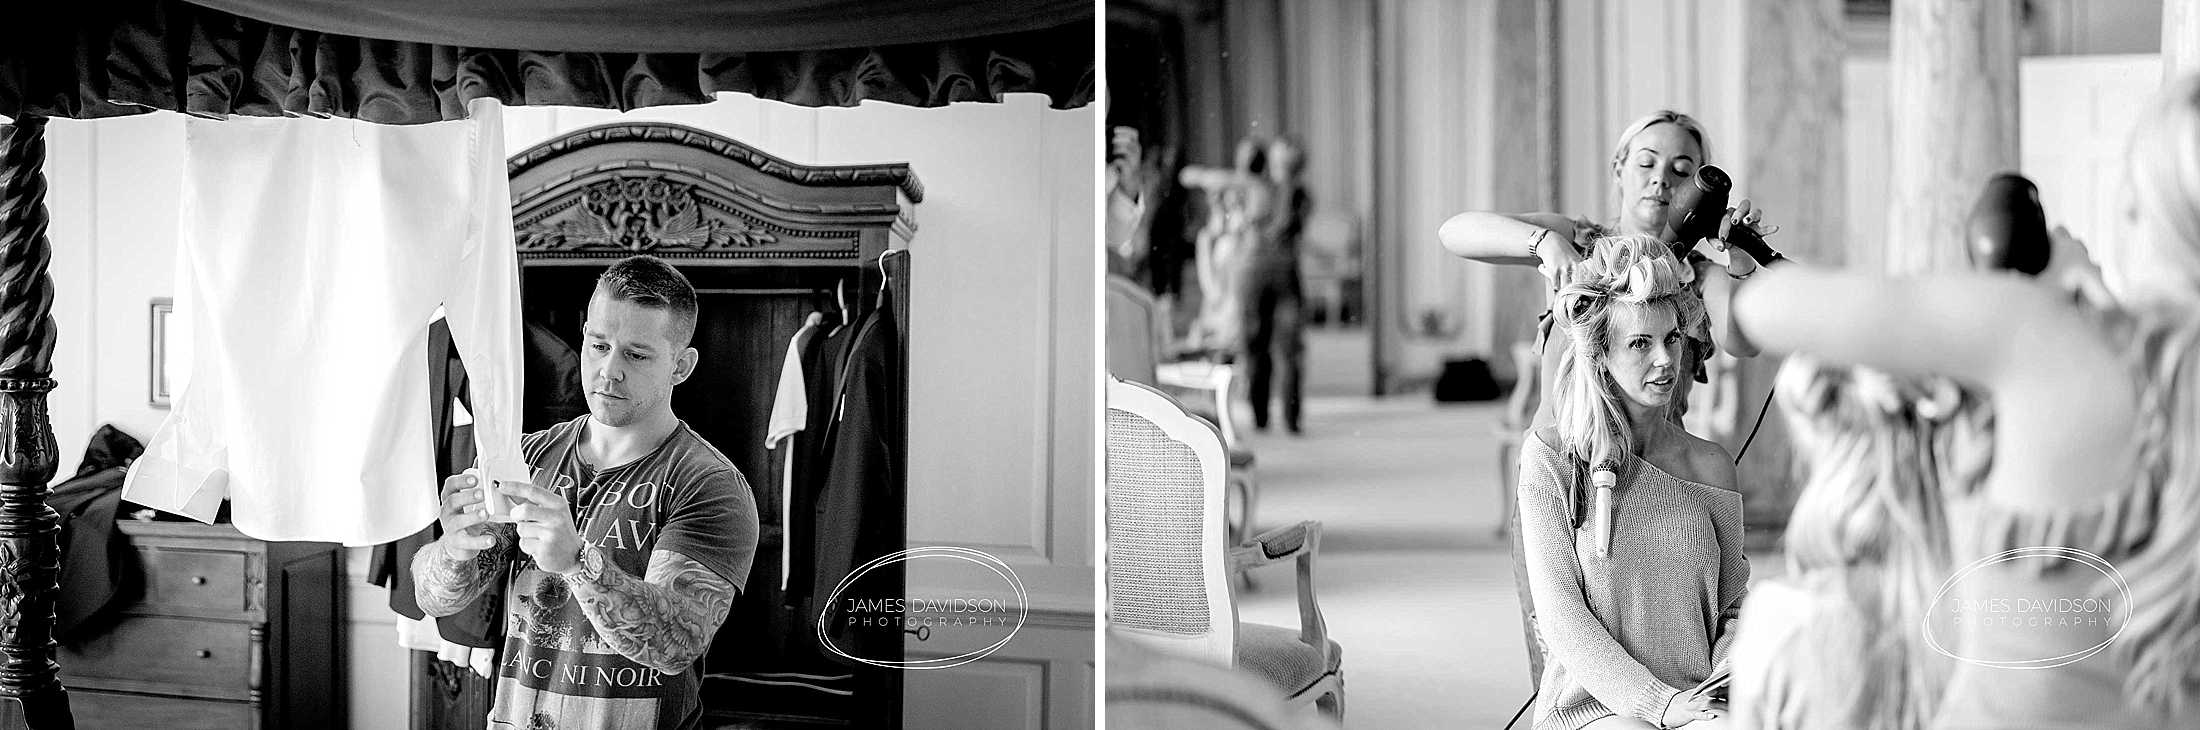 gosfield-hall-wedding-photography-008